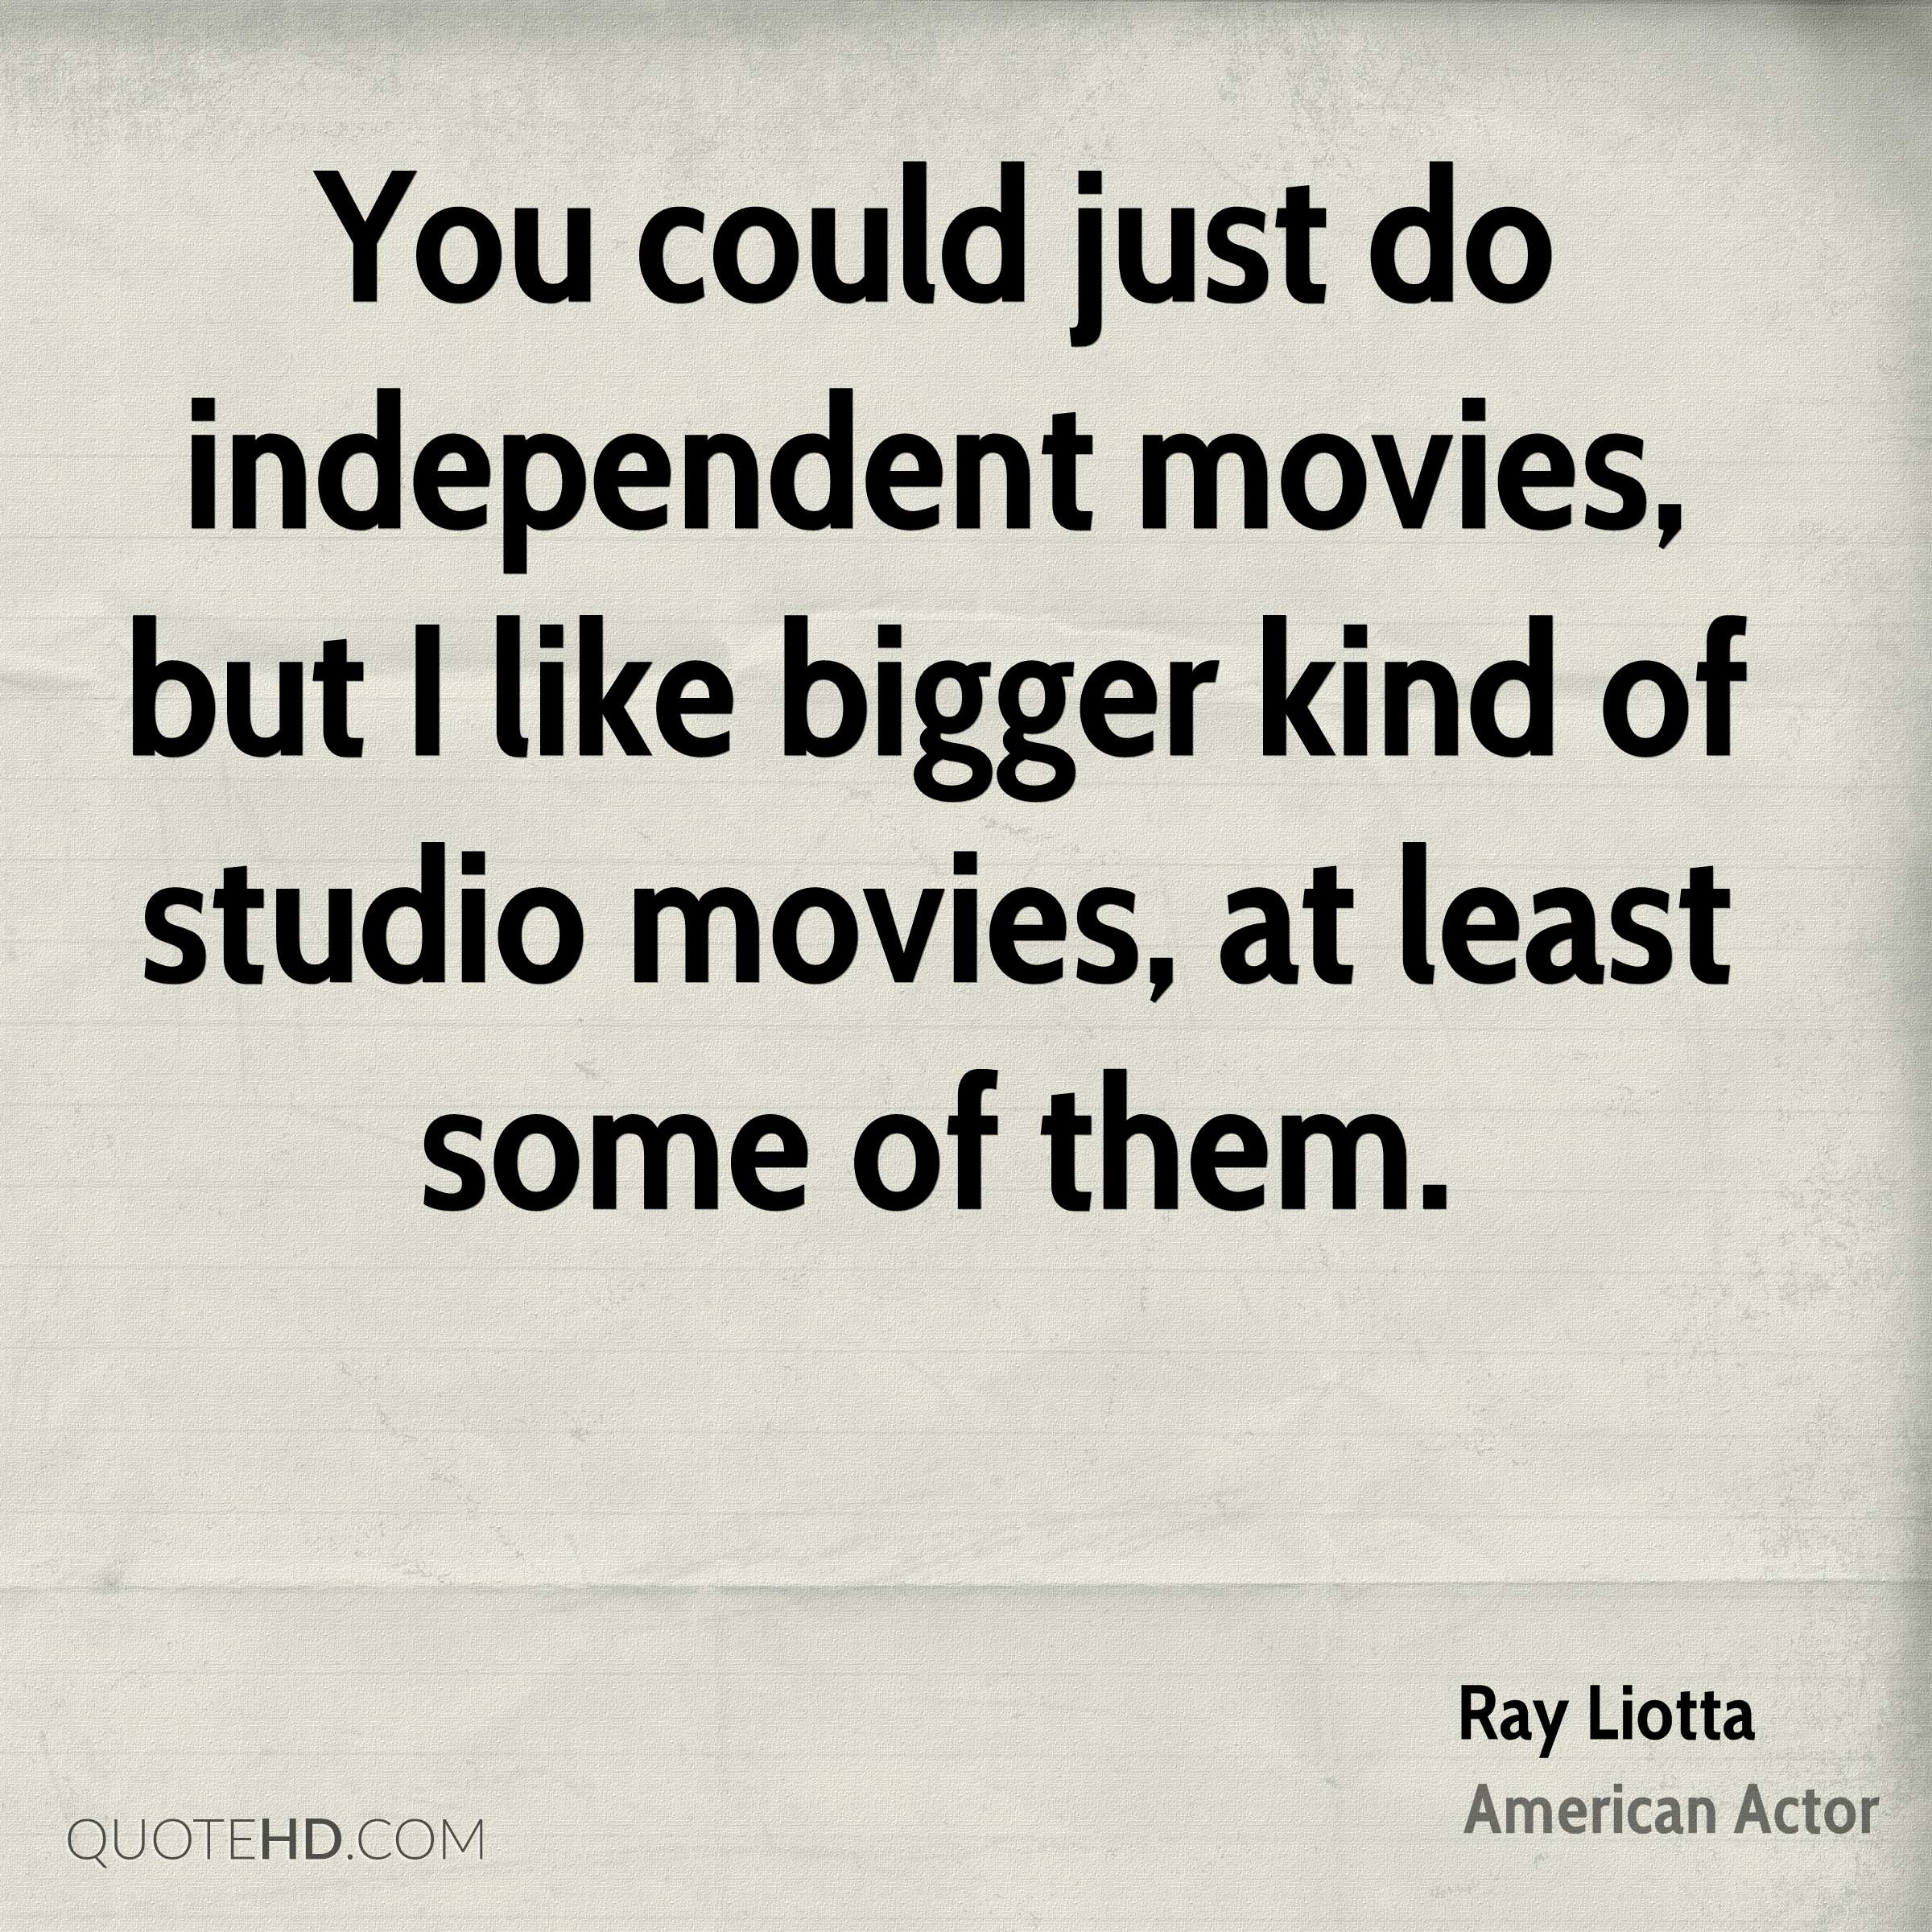 You could just do independent movies, but I like bigger kind of studio movies, at least some of them.